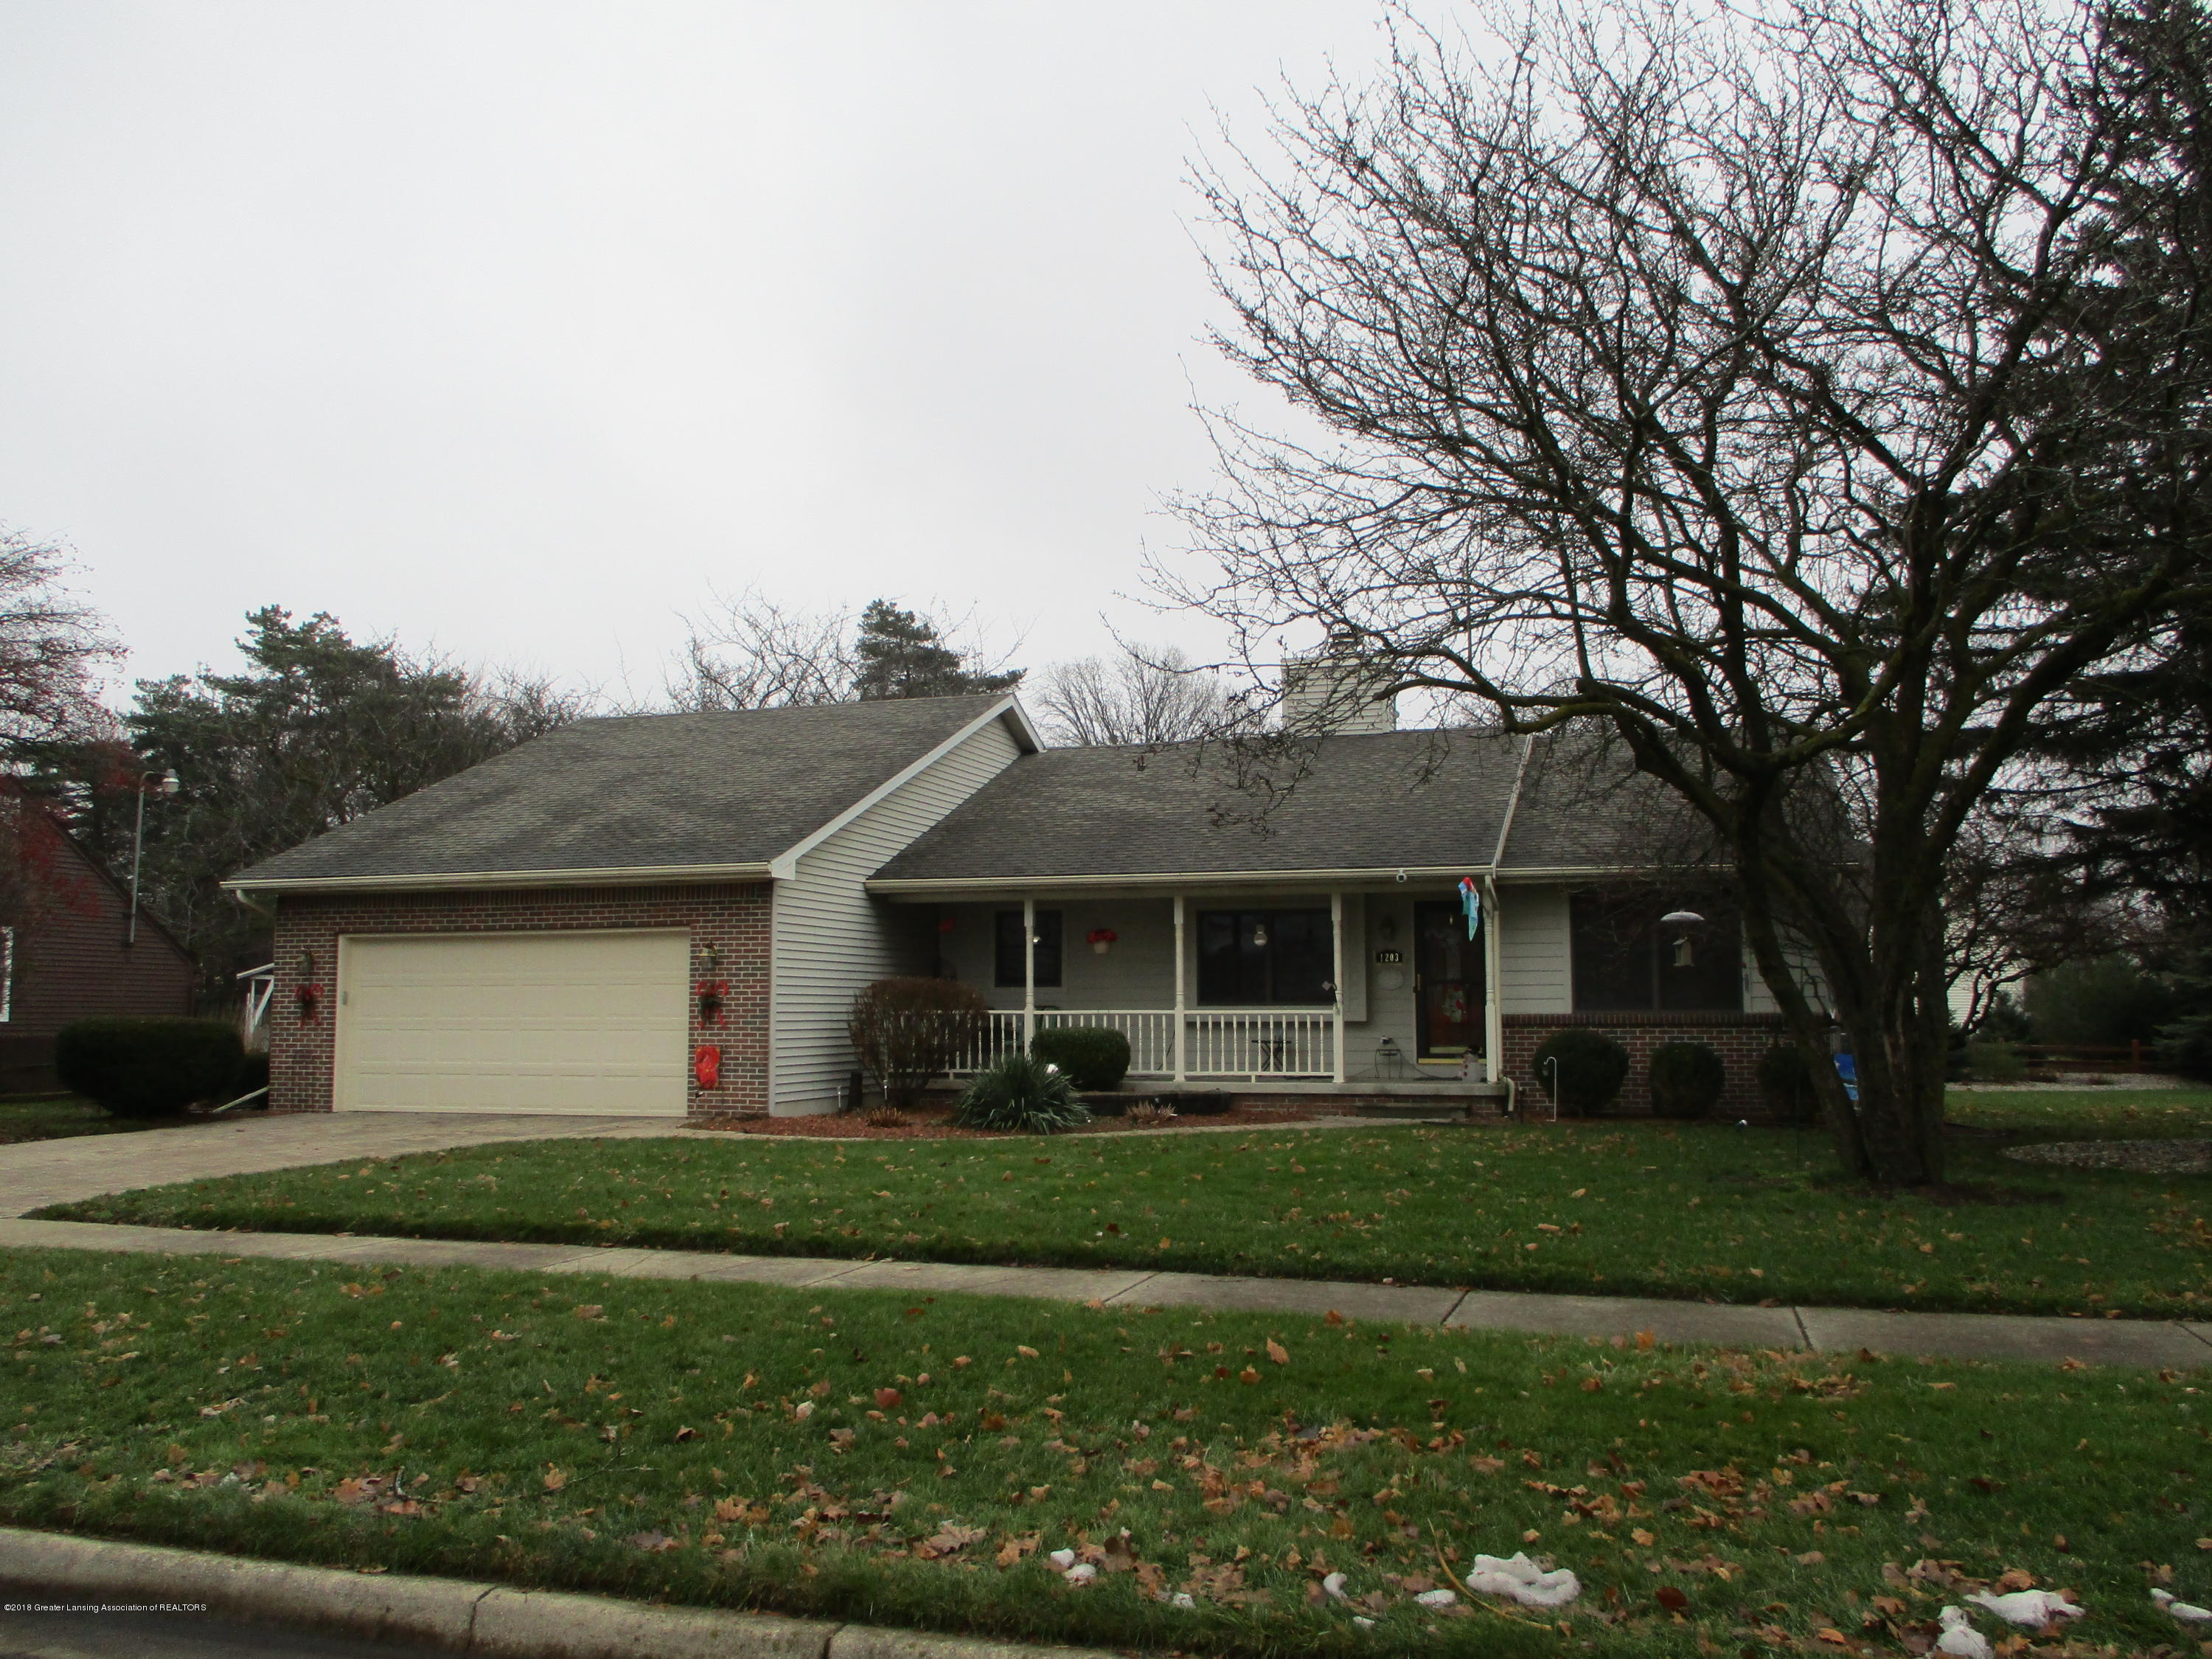 1203 Hampshire Dr - STREET VIEW - 1